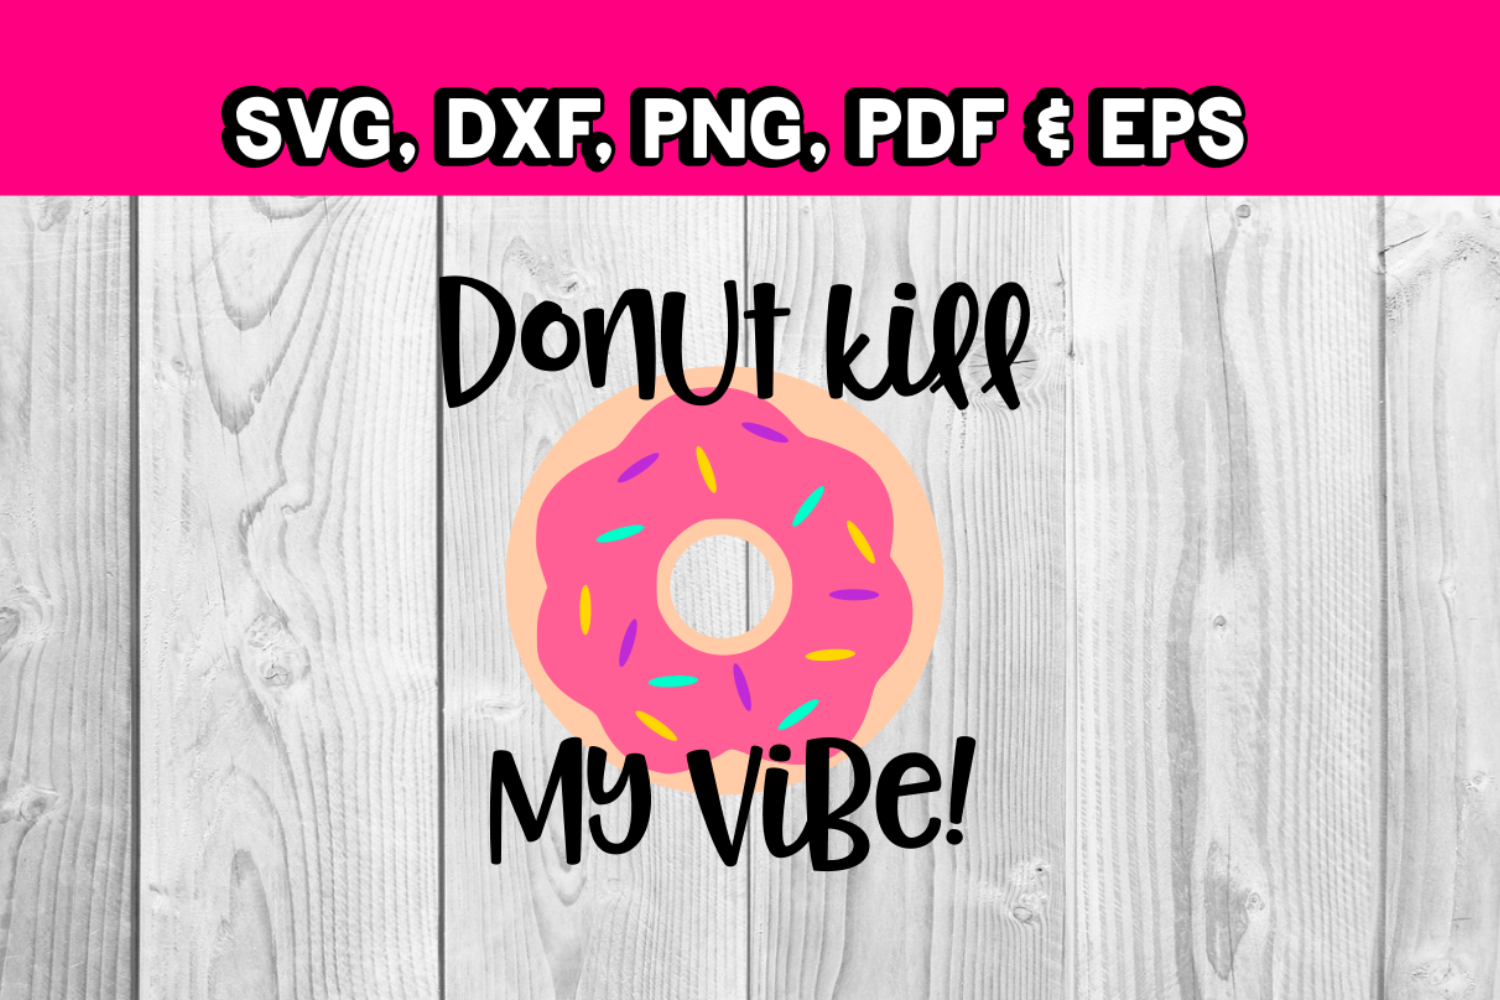 Donut kill my vibe - Donut svg file - donut shop example image 1